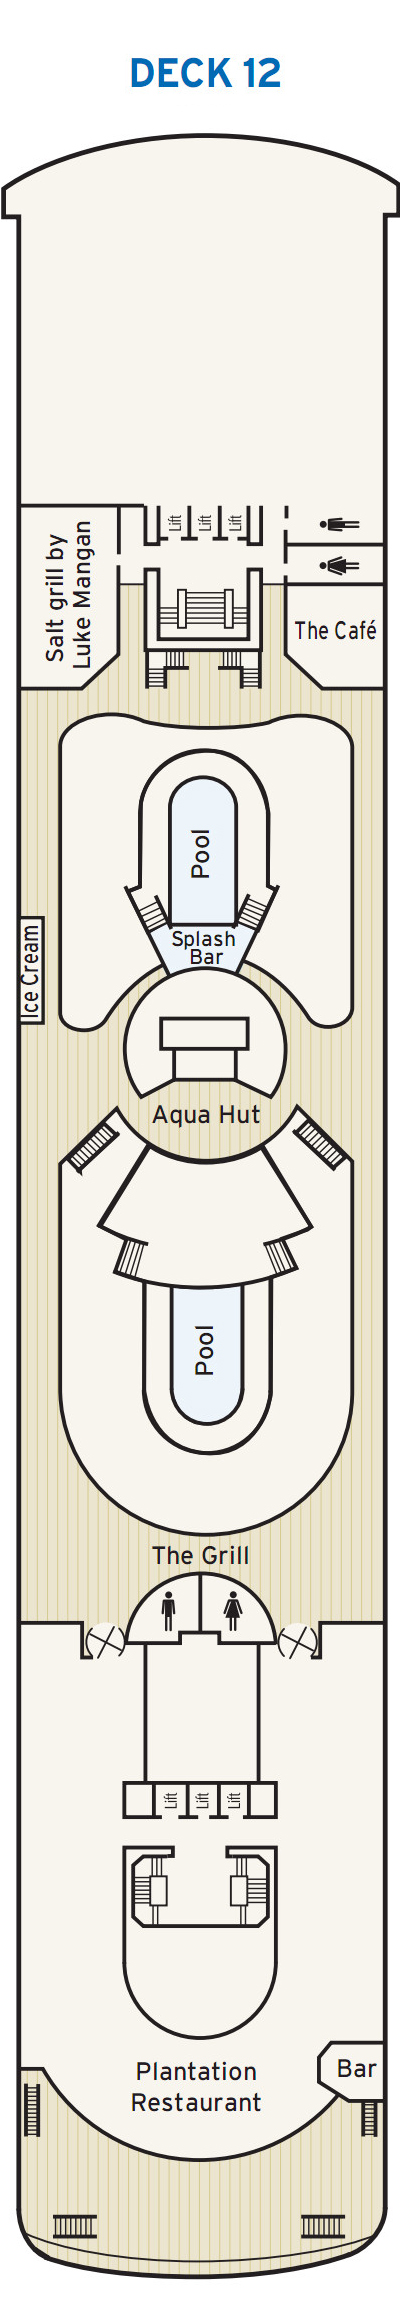 P&O - Pacific Pearl Deck 12 layout